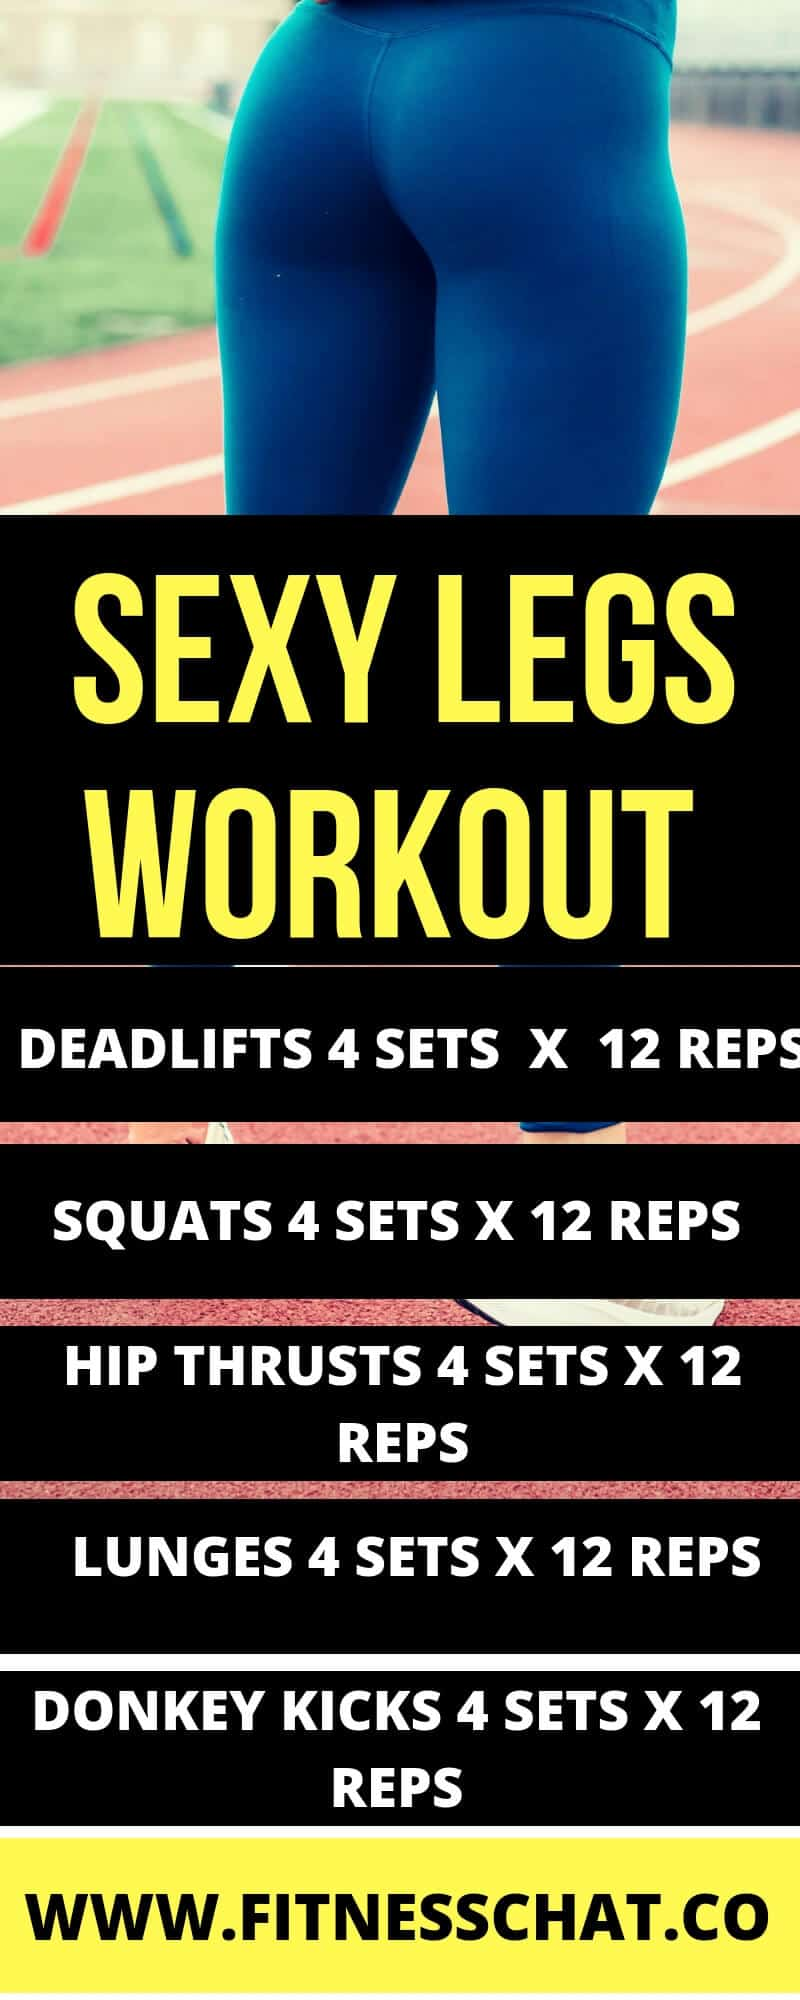 Sexy legs workout plan with dumbbells